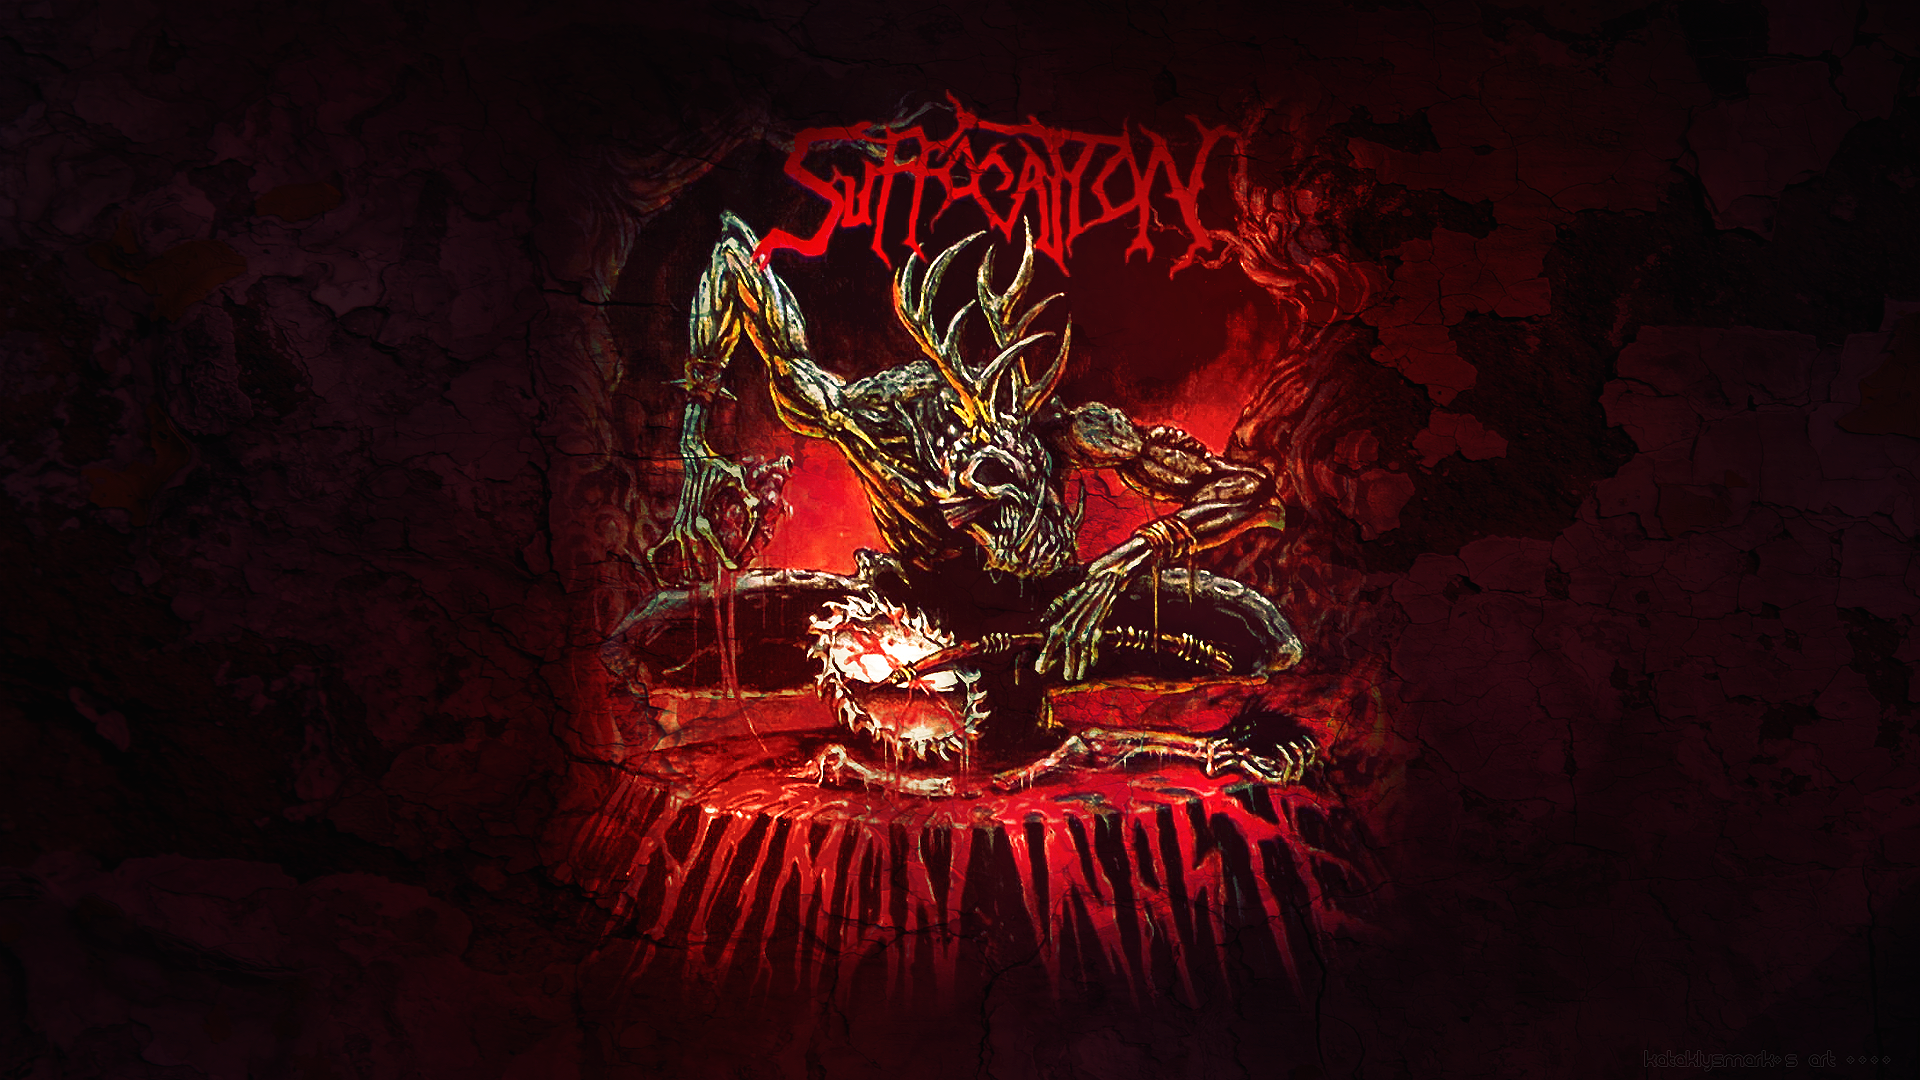 Nice wallpapers Suffocation 1920x1080px